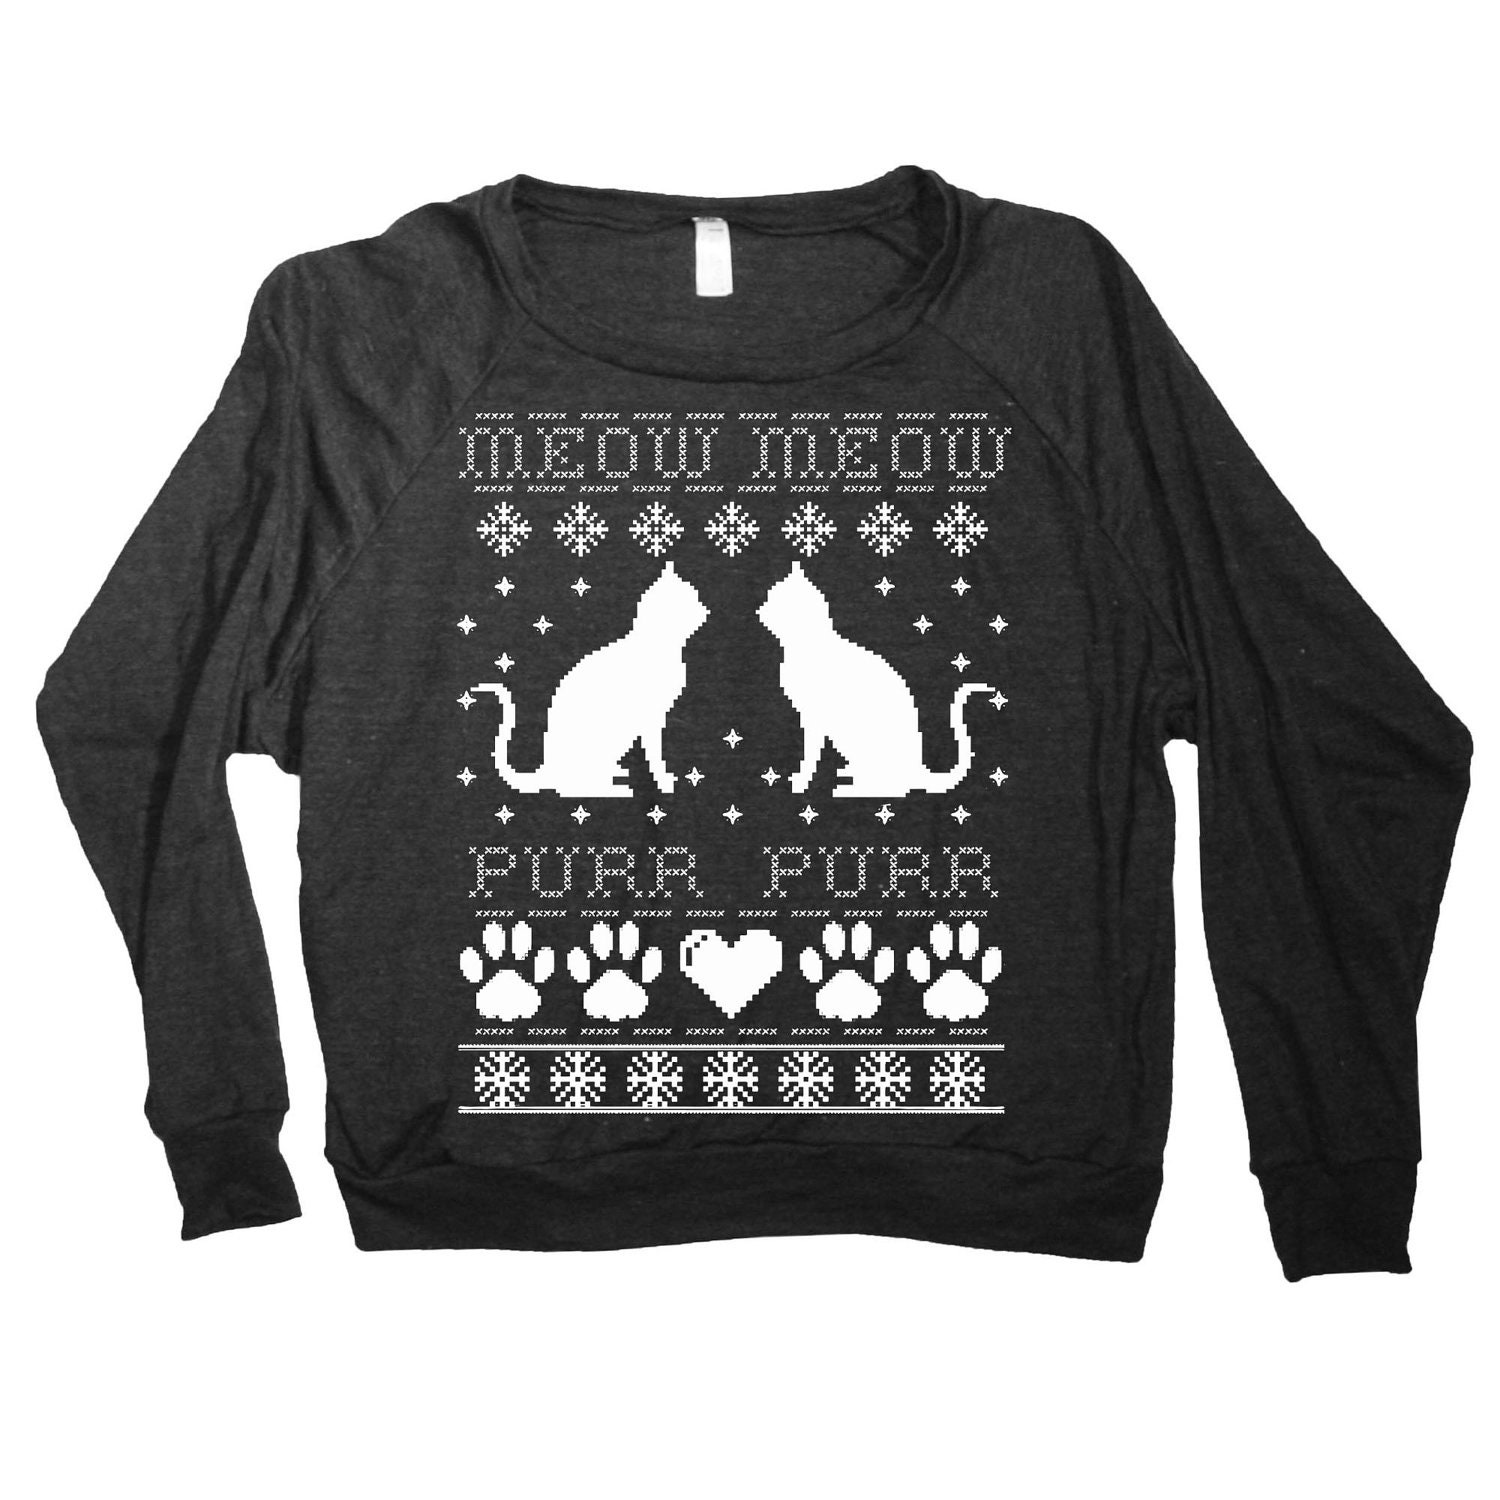 Funny christmas sweaters women